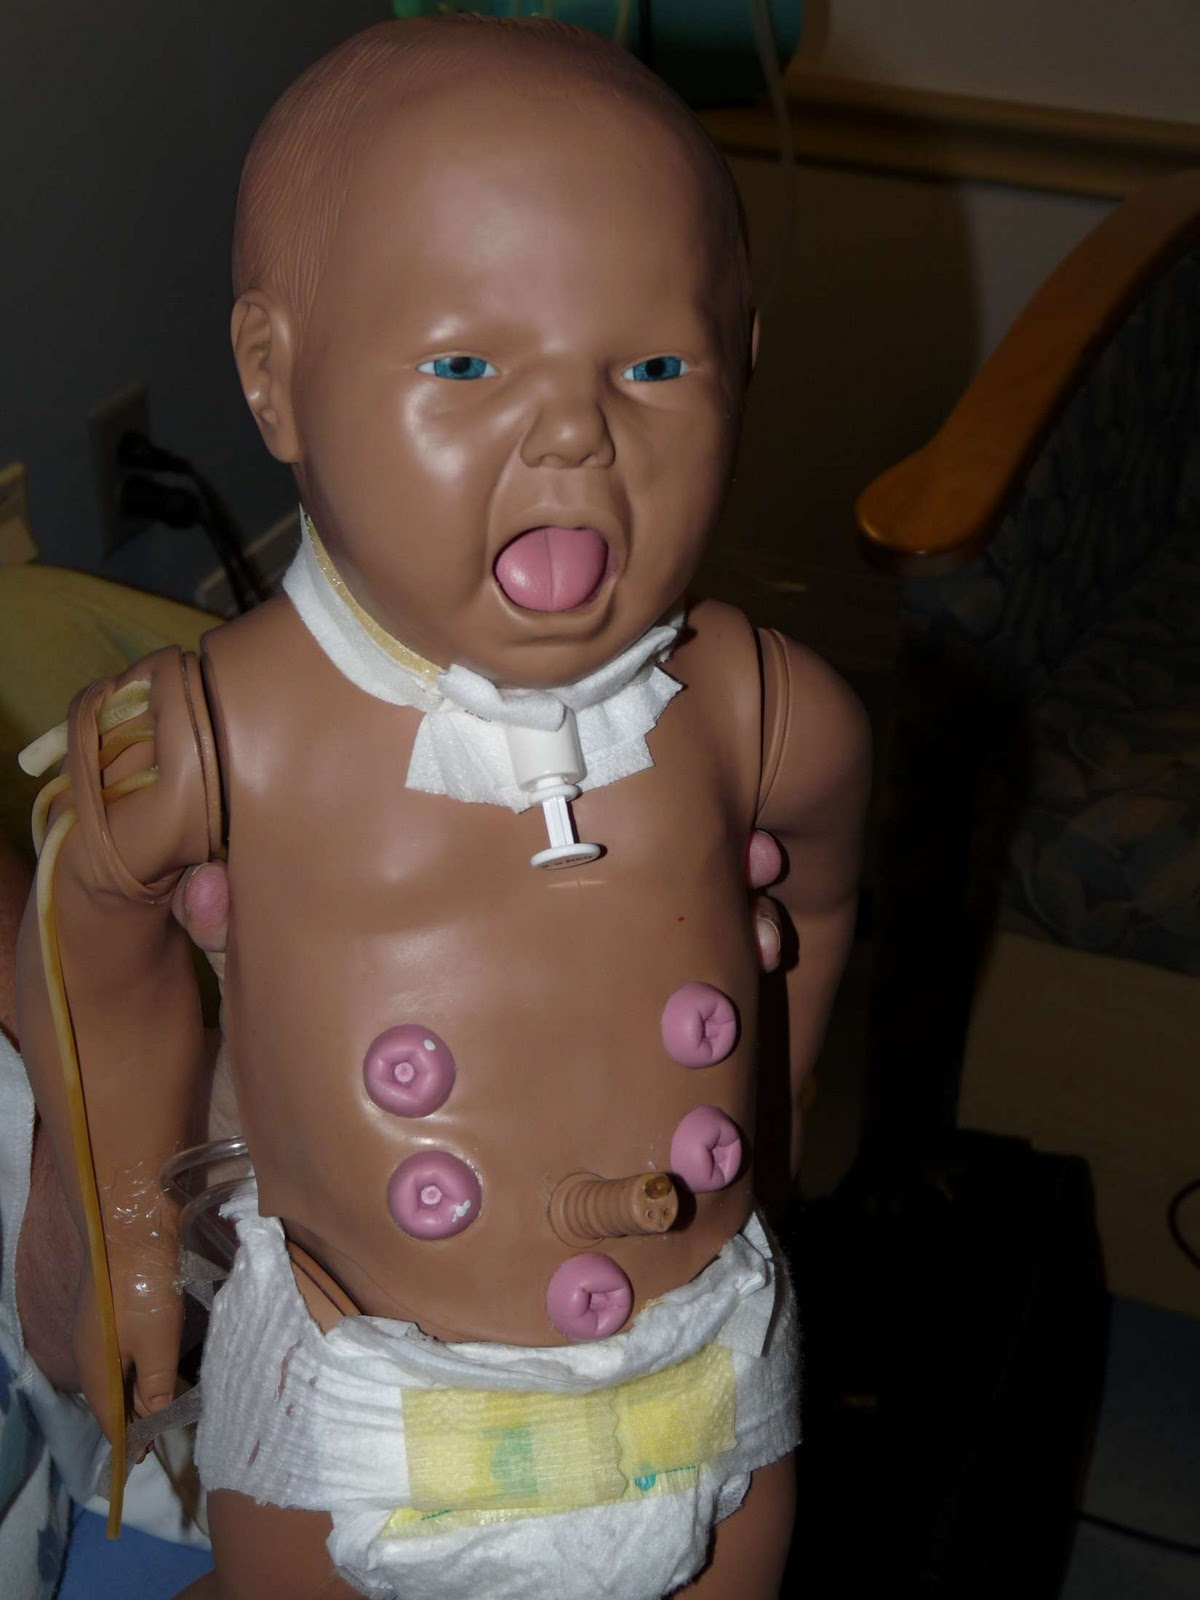 Thing we introduced scary stoma doll to lee and this was his reaction